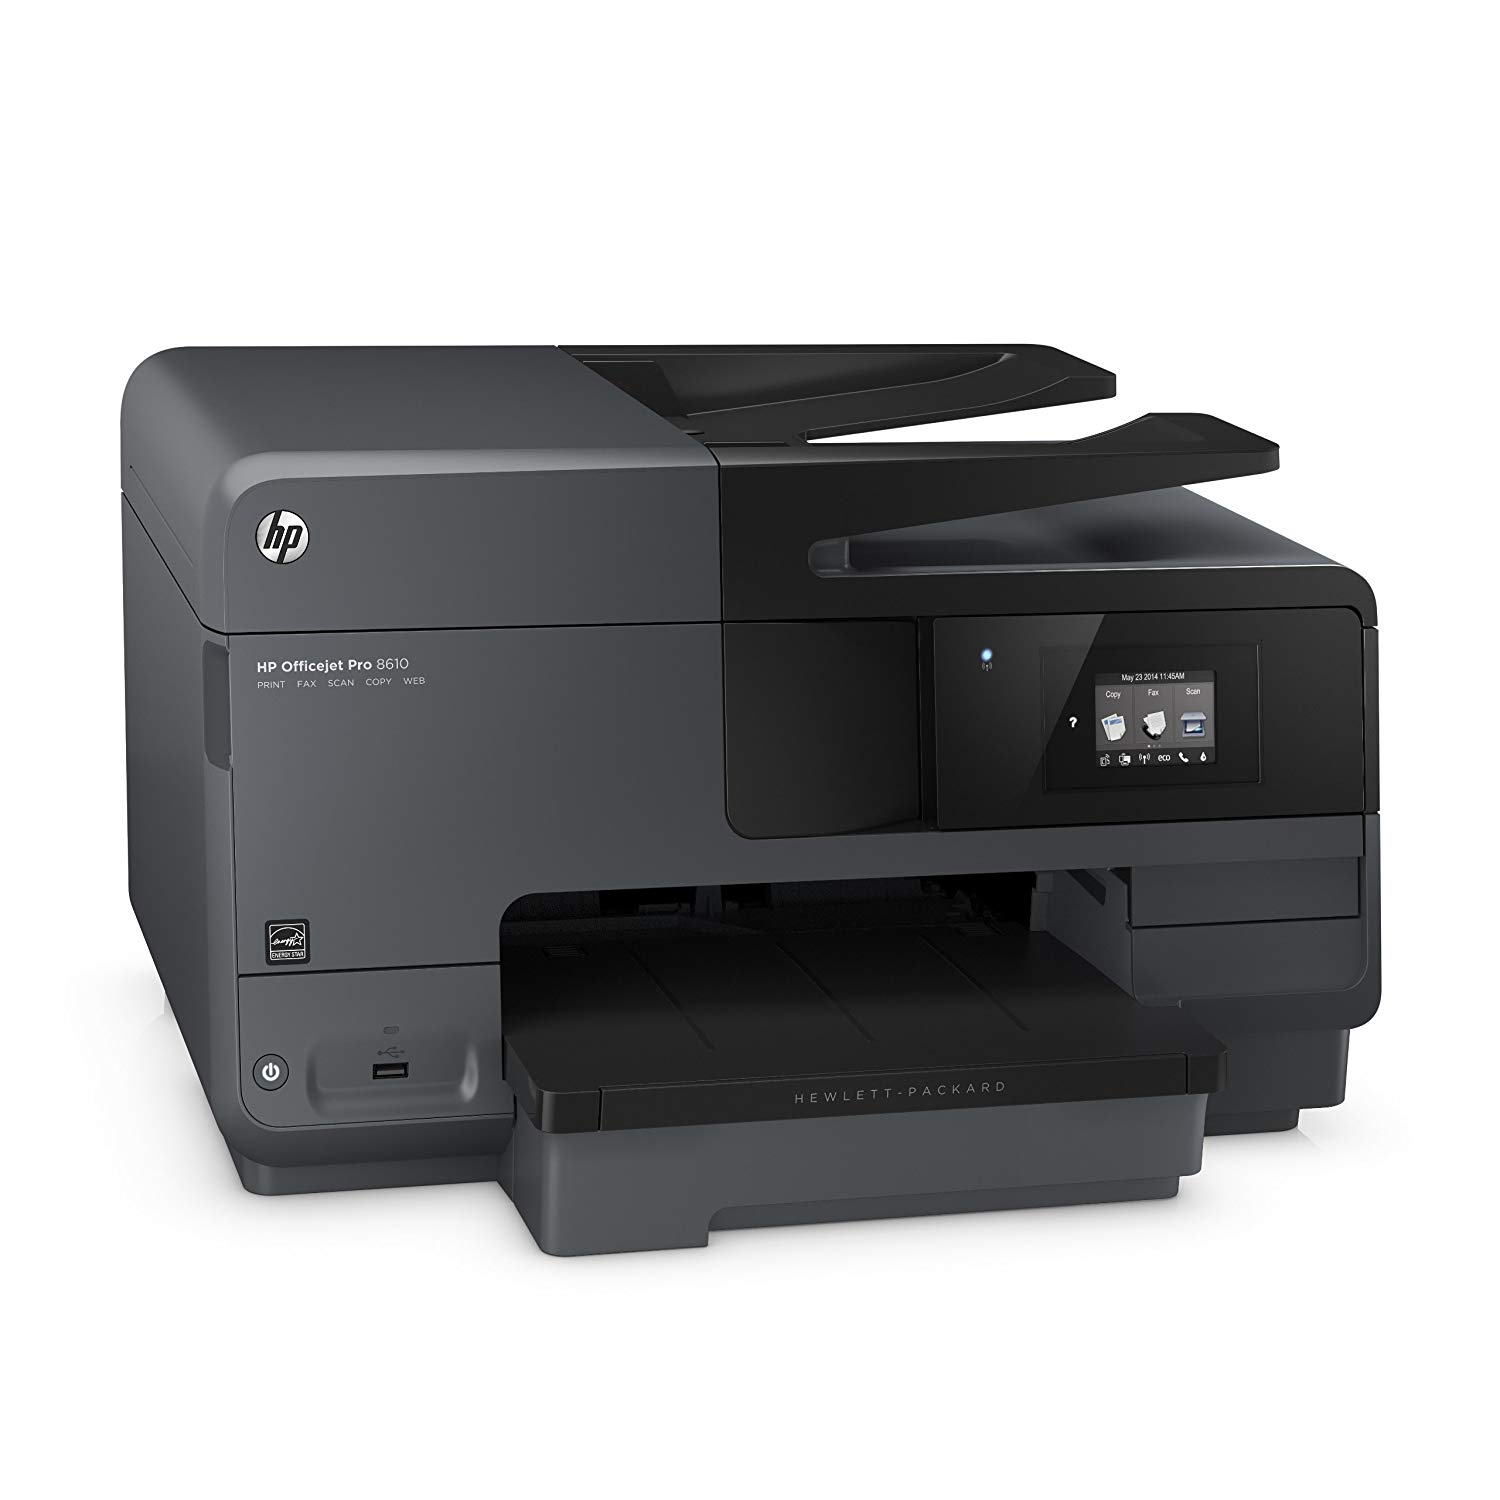 Hewlett-Packard OfficeJet Pro 8610 (A7F64A) All-in-One Wireless Printer with Mobile Printing, Instant Ink ready.